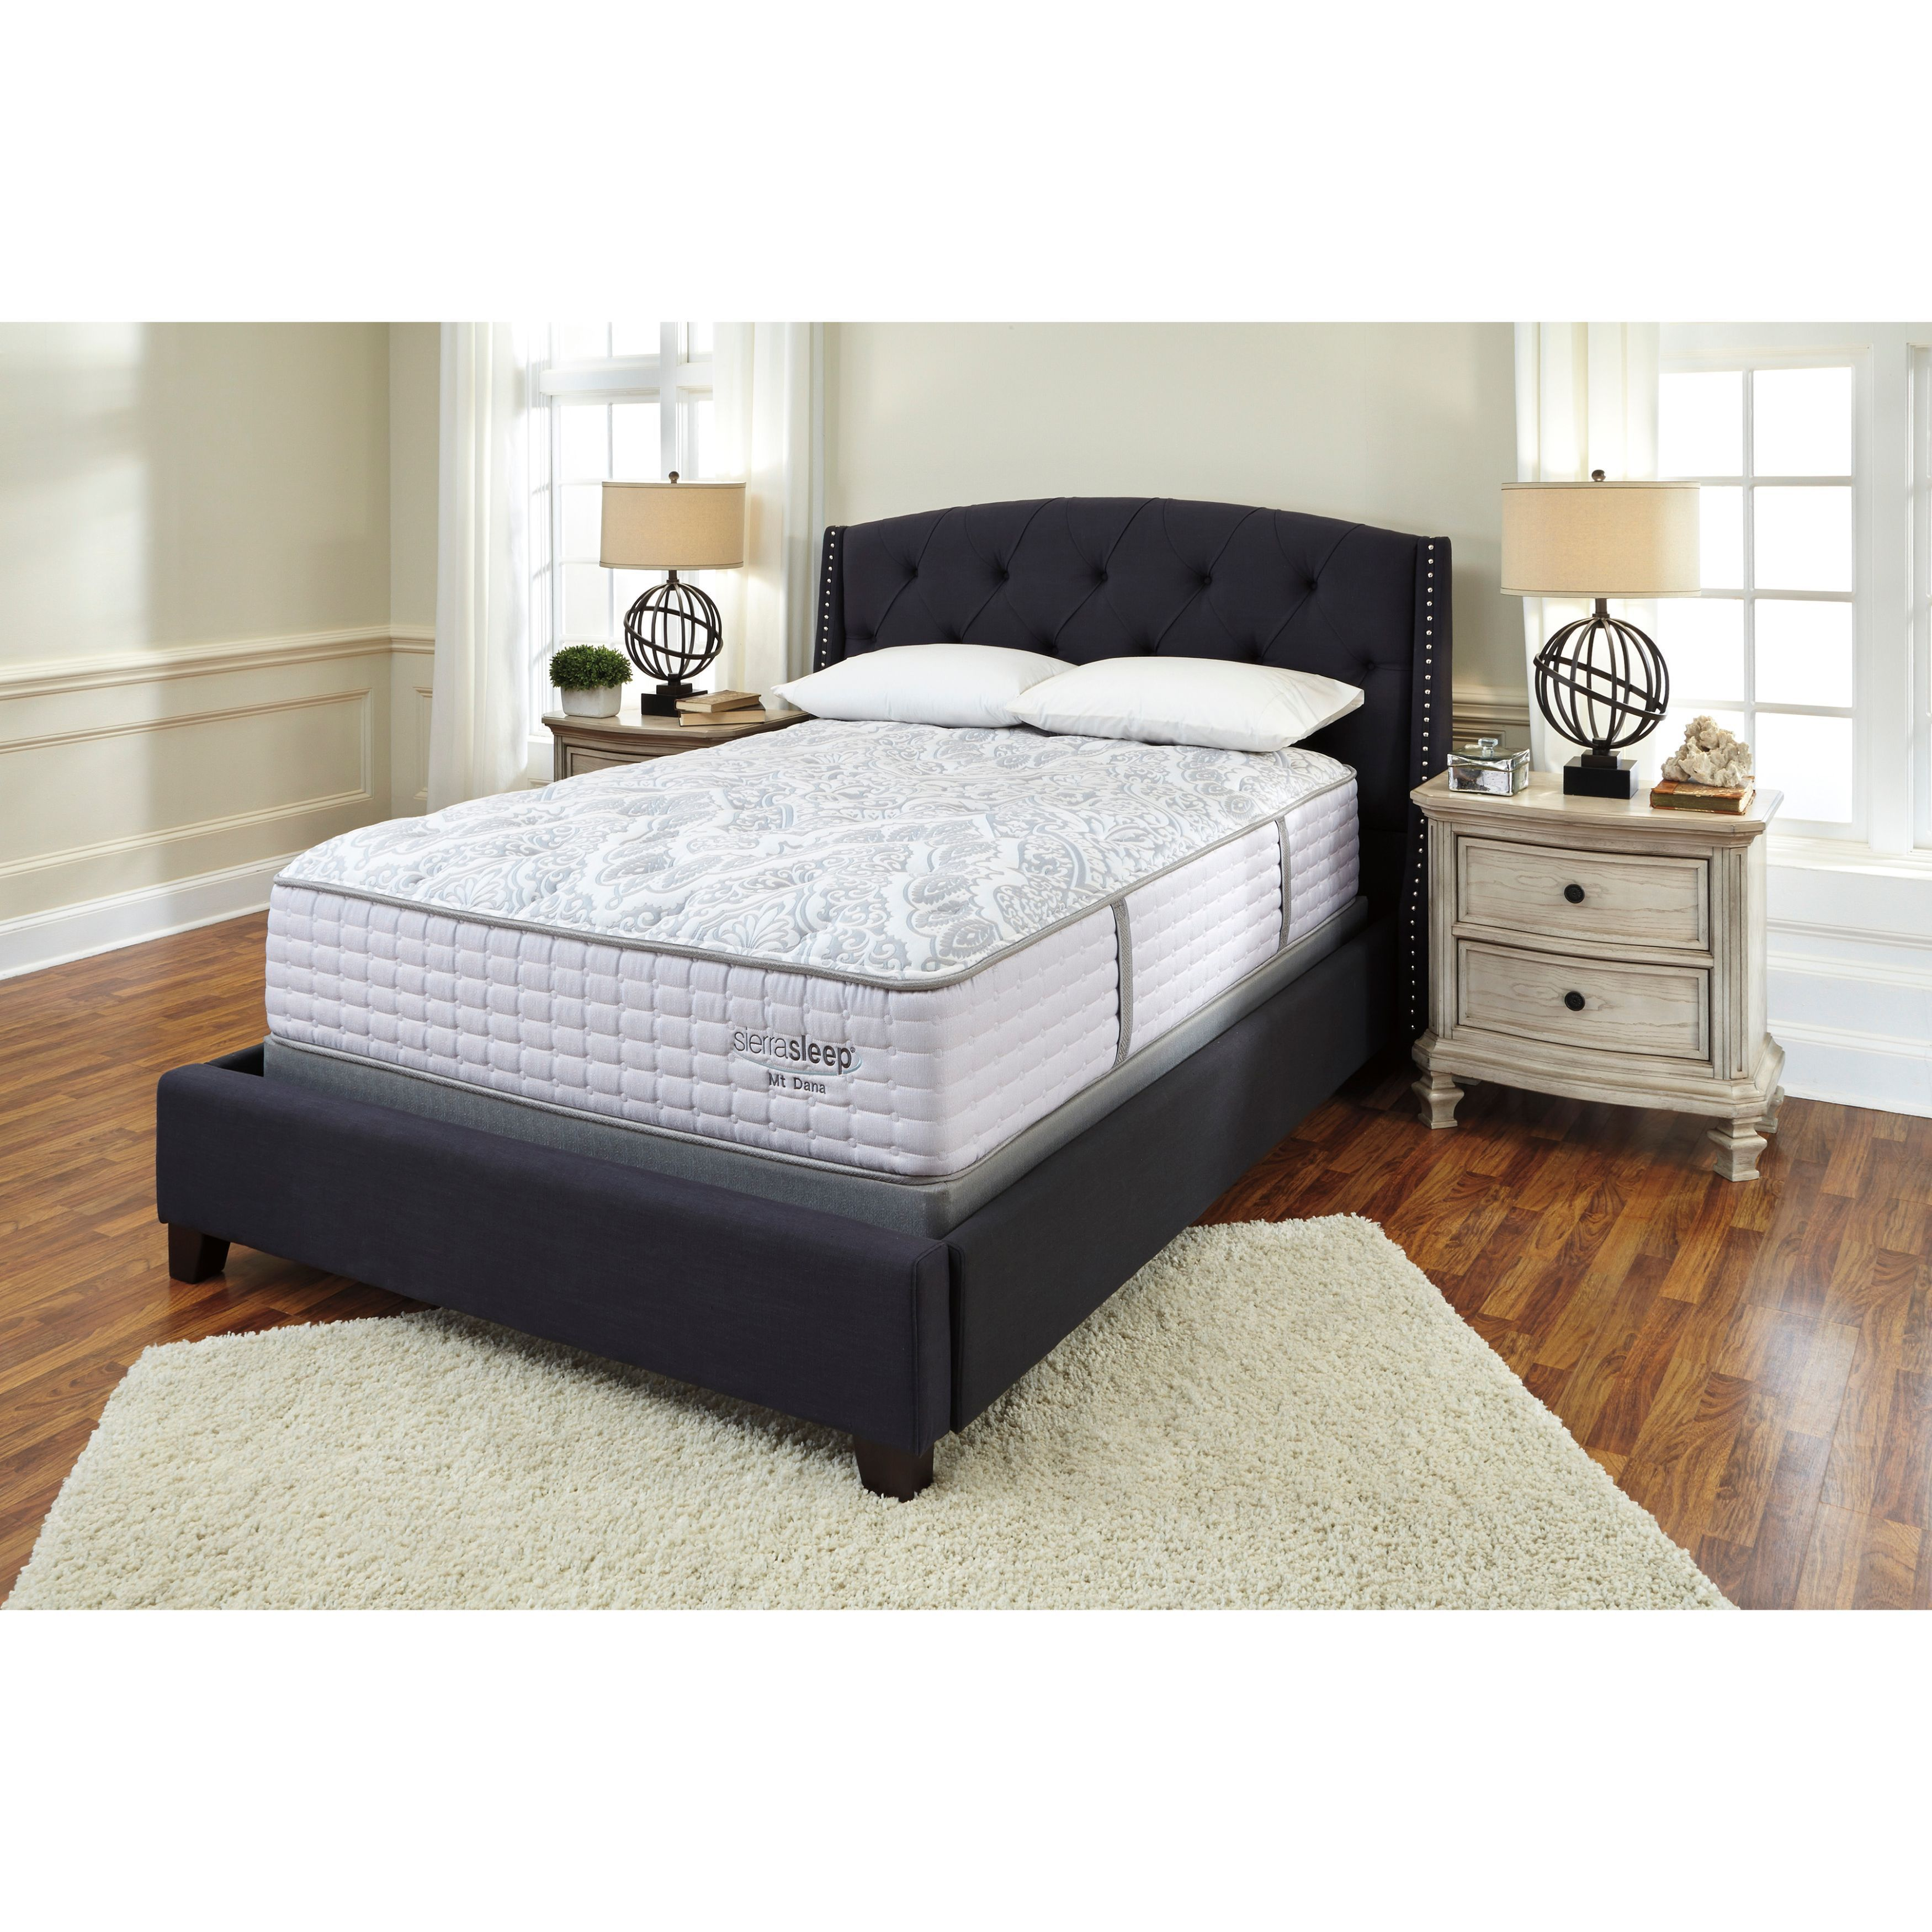 garden product home free mattress response top mattresses pillow today king size sealy performance inch plush overstock euro shipping set